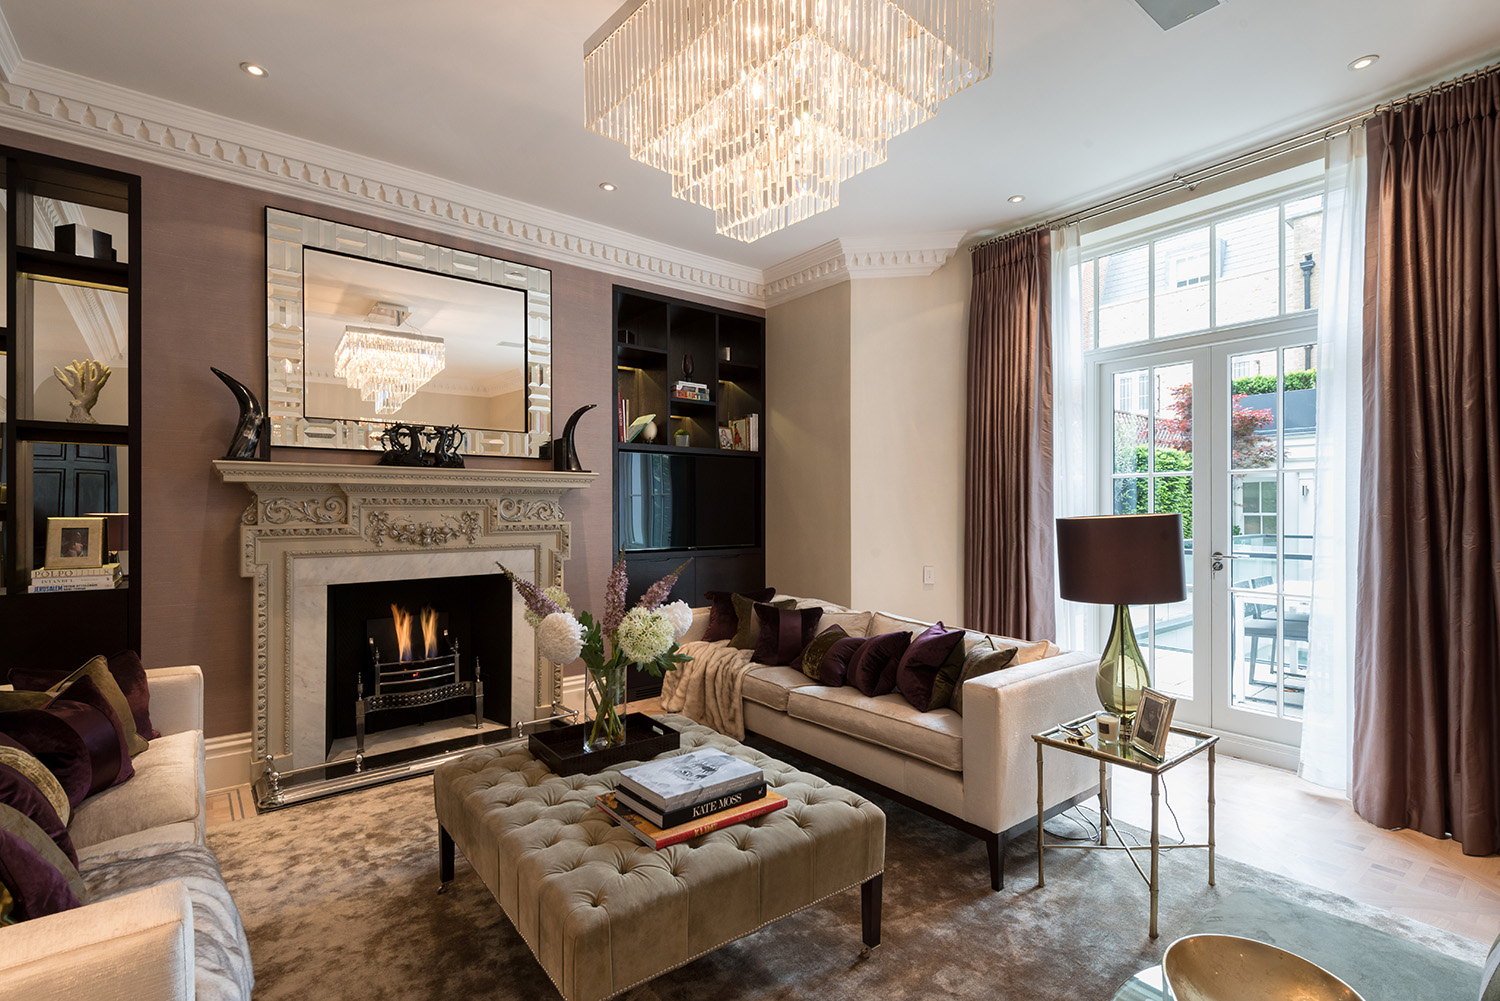 Design Box London - Interior Design - Mayfair Family Home